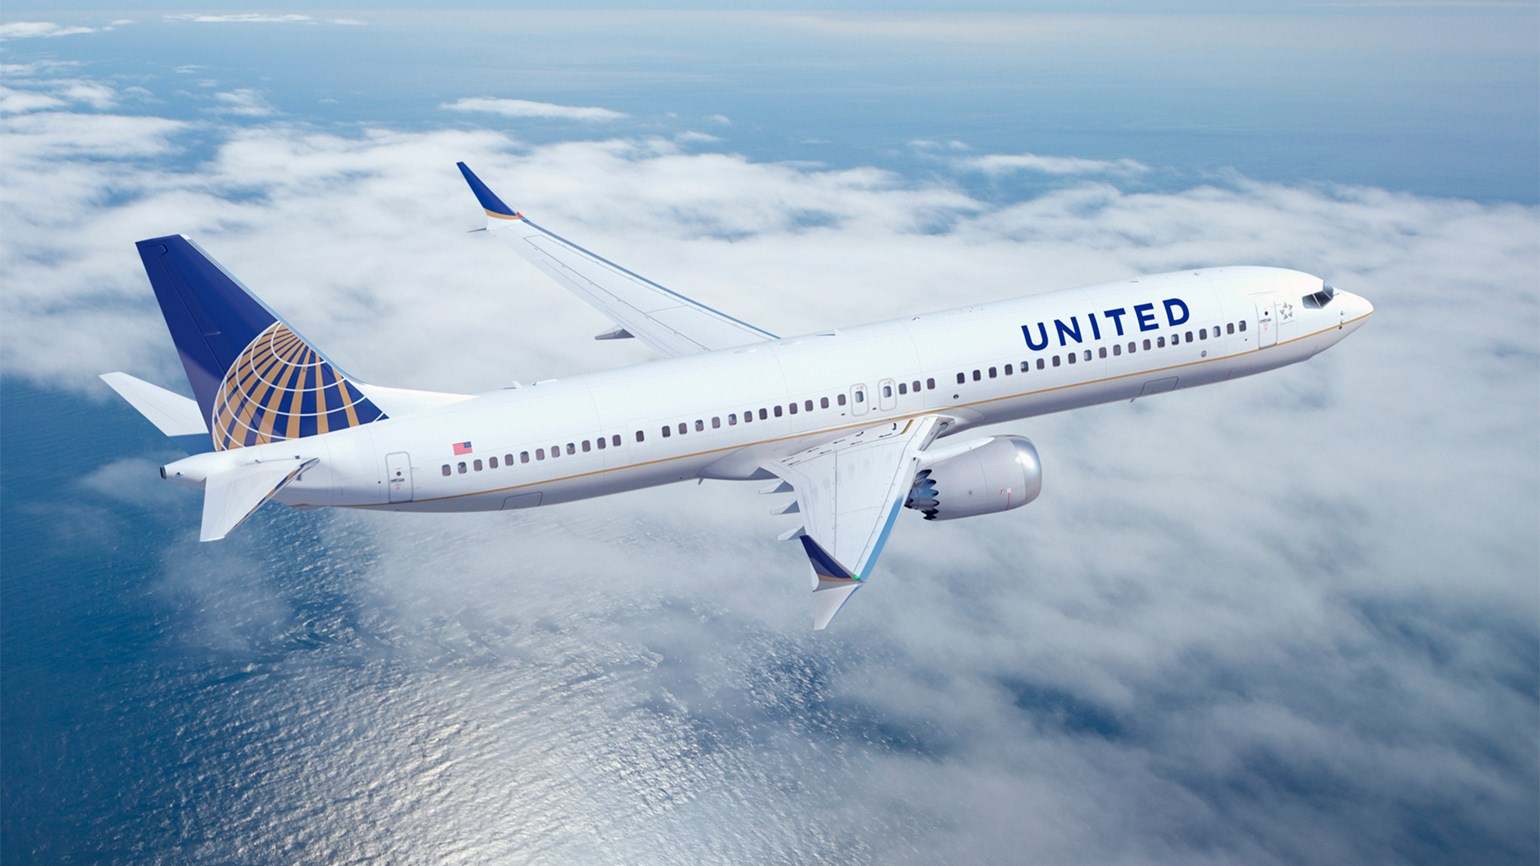 United curtails involuntary removals, reduces overbookings